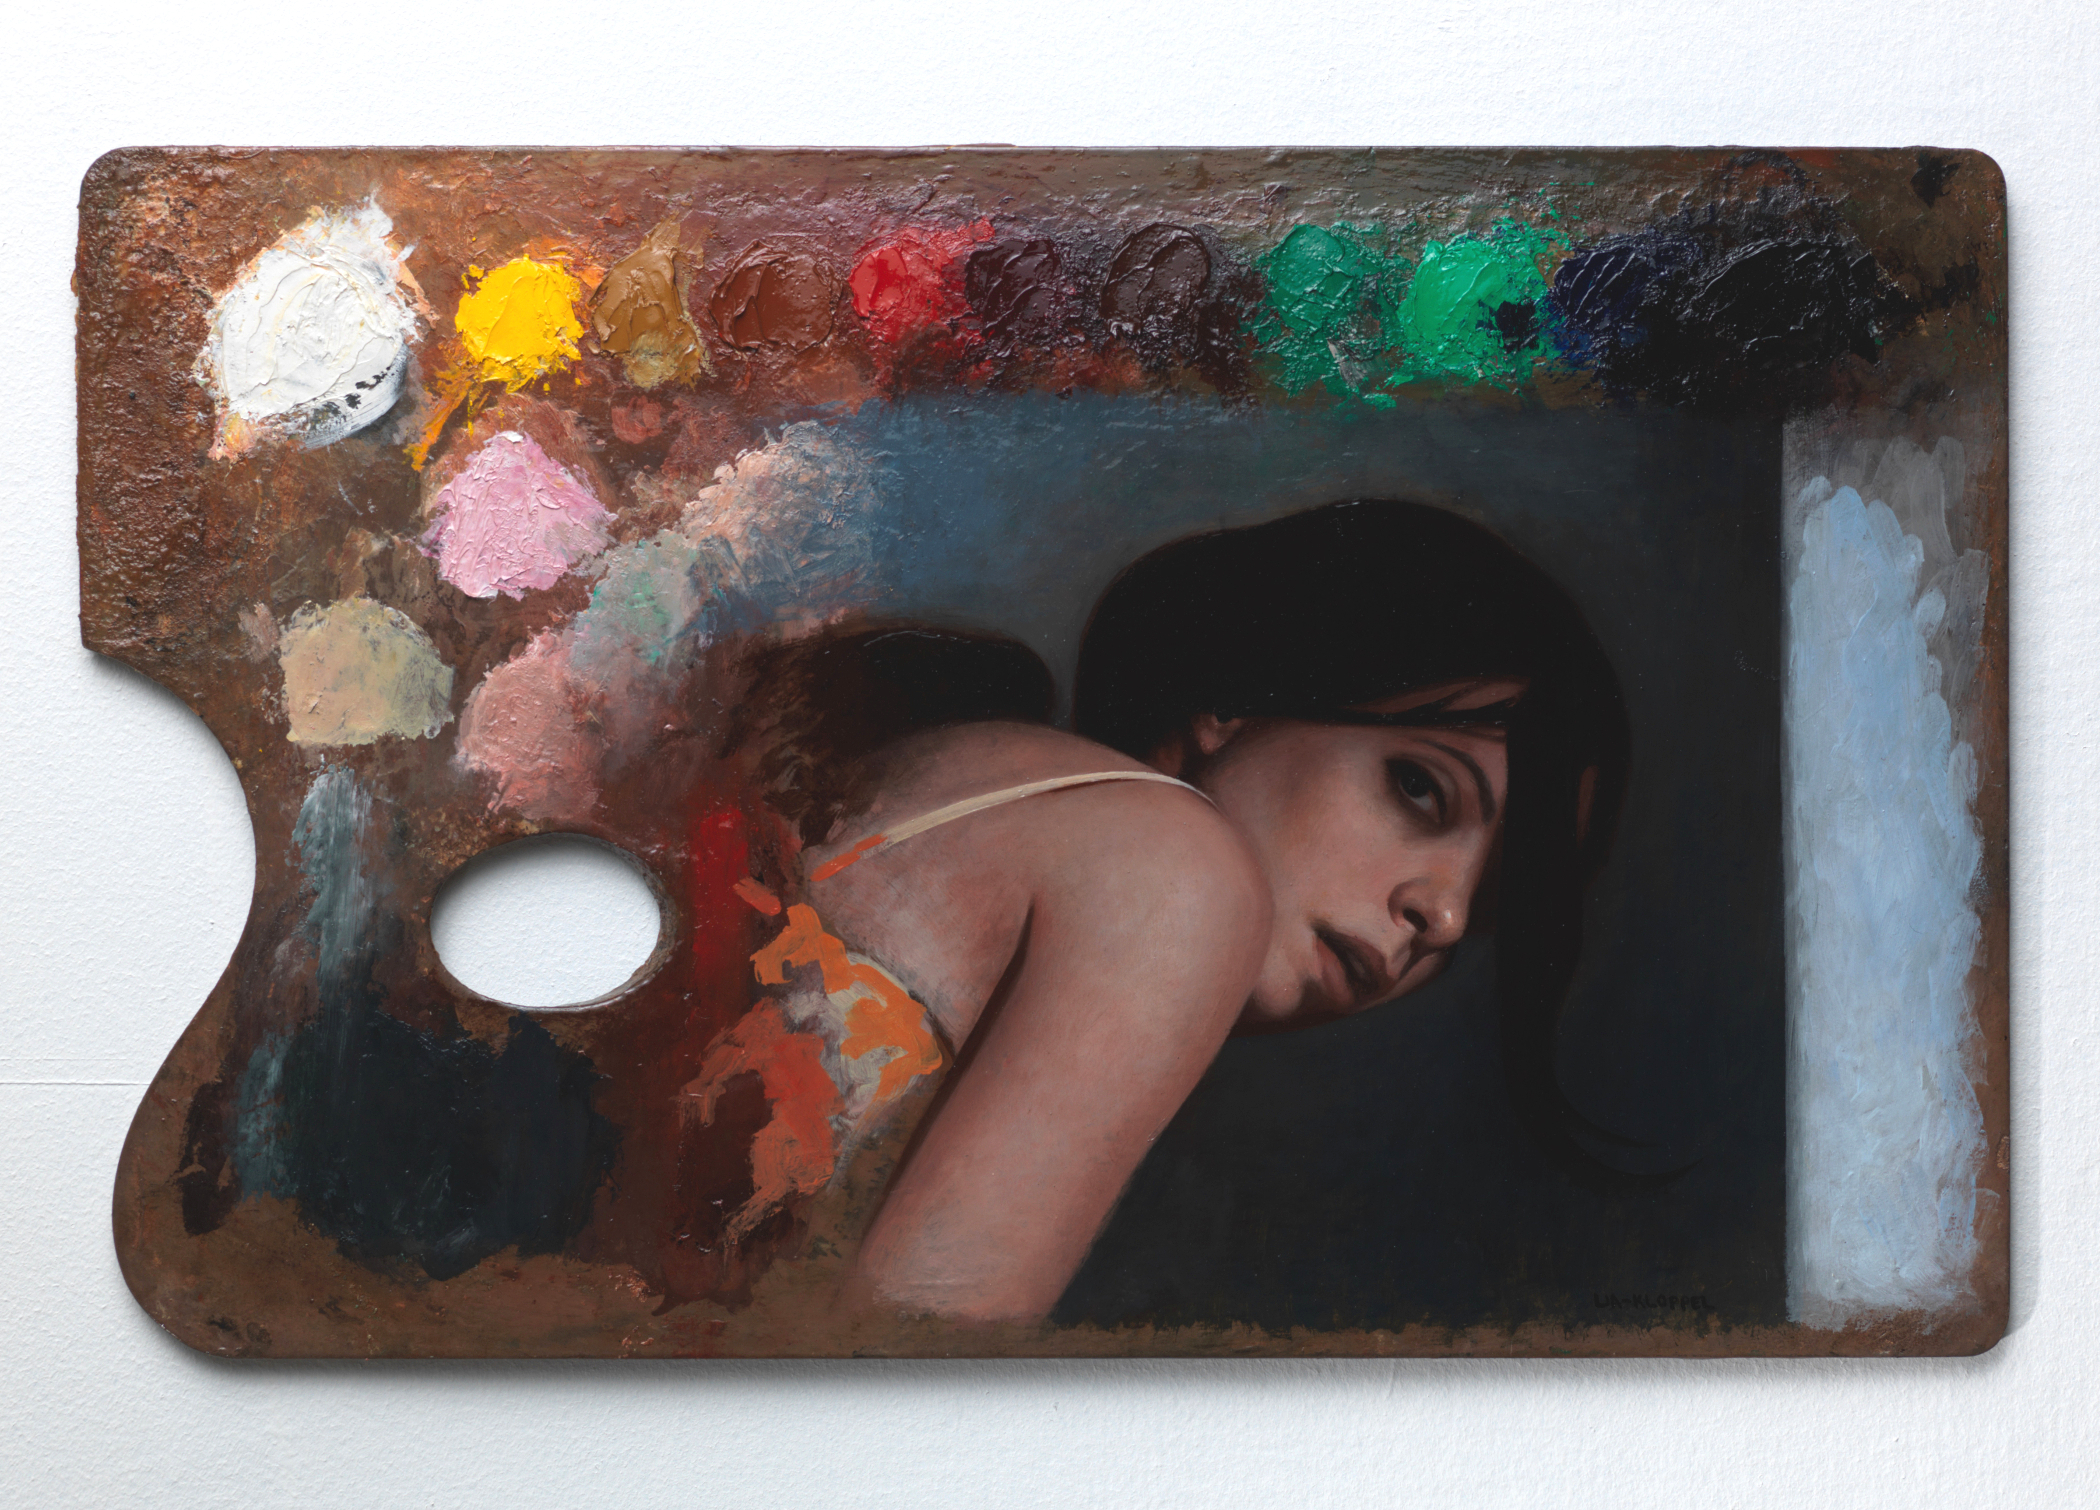 Palette Painting , 2016, Oil on a wood palette, 11 x 17.5 inches, Private collection